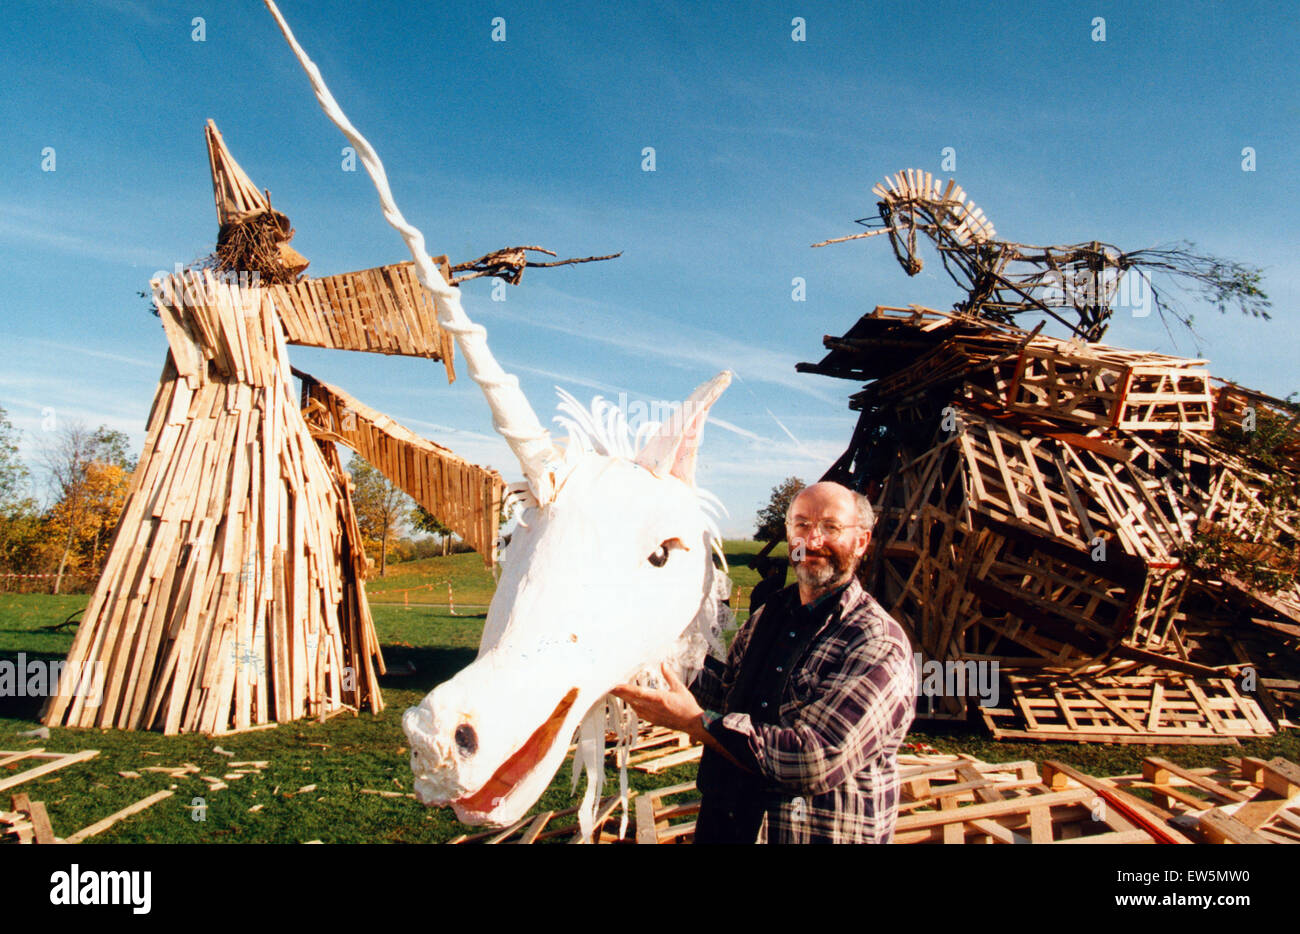 Sculptor, Phil Bews with his bonfire sculptures of a wizard and a unicorn. Birchwood forest park, Warrington,  3rd - Stock Image